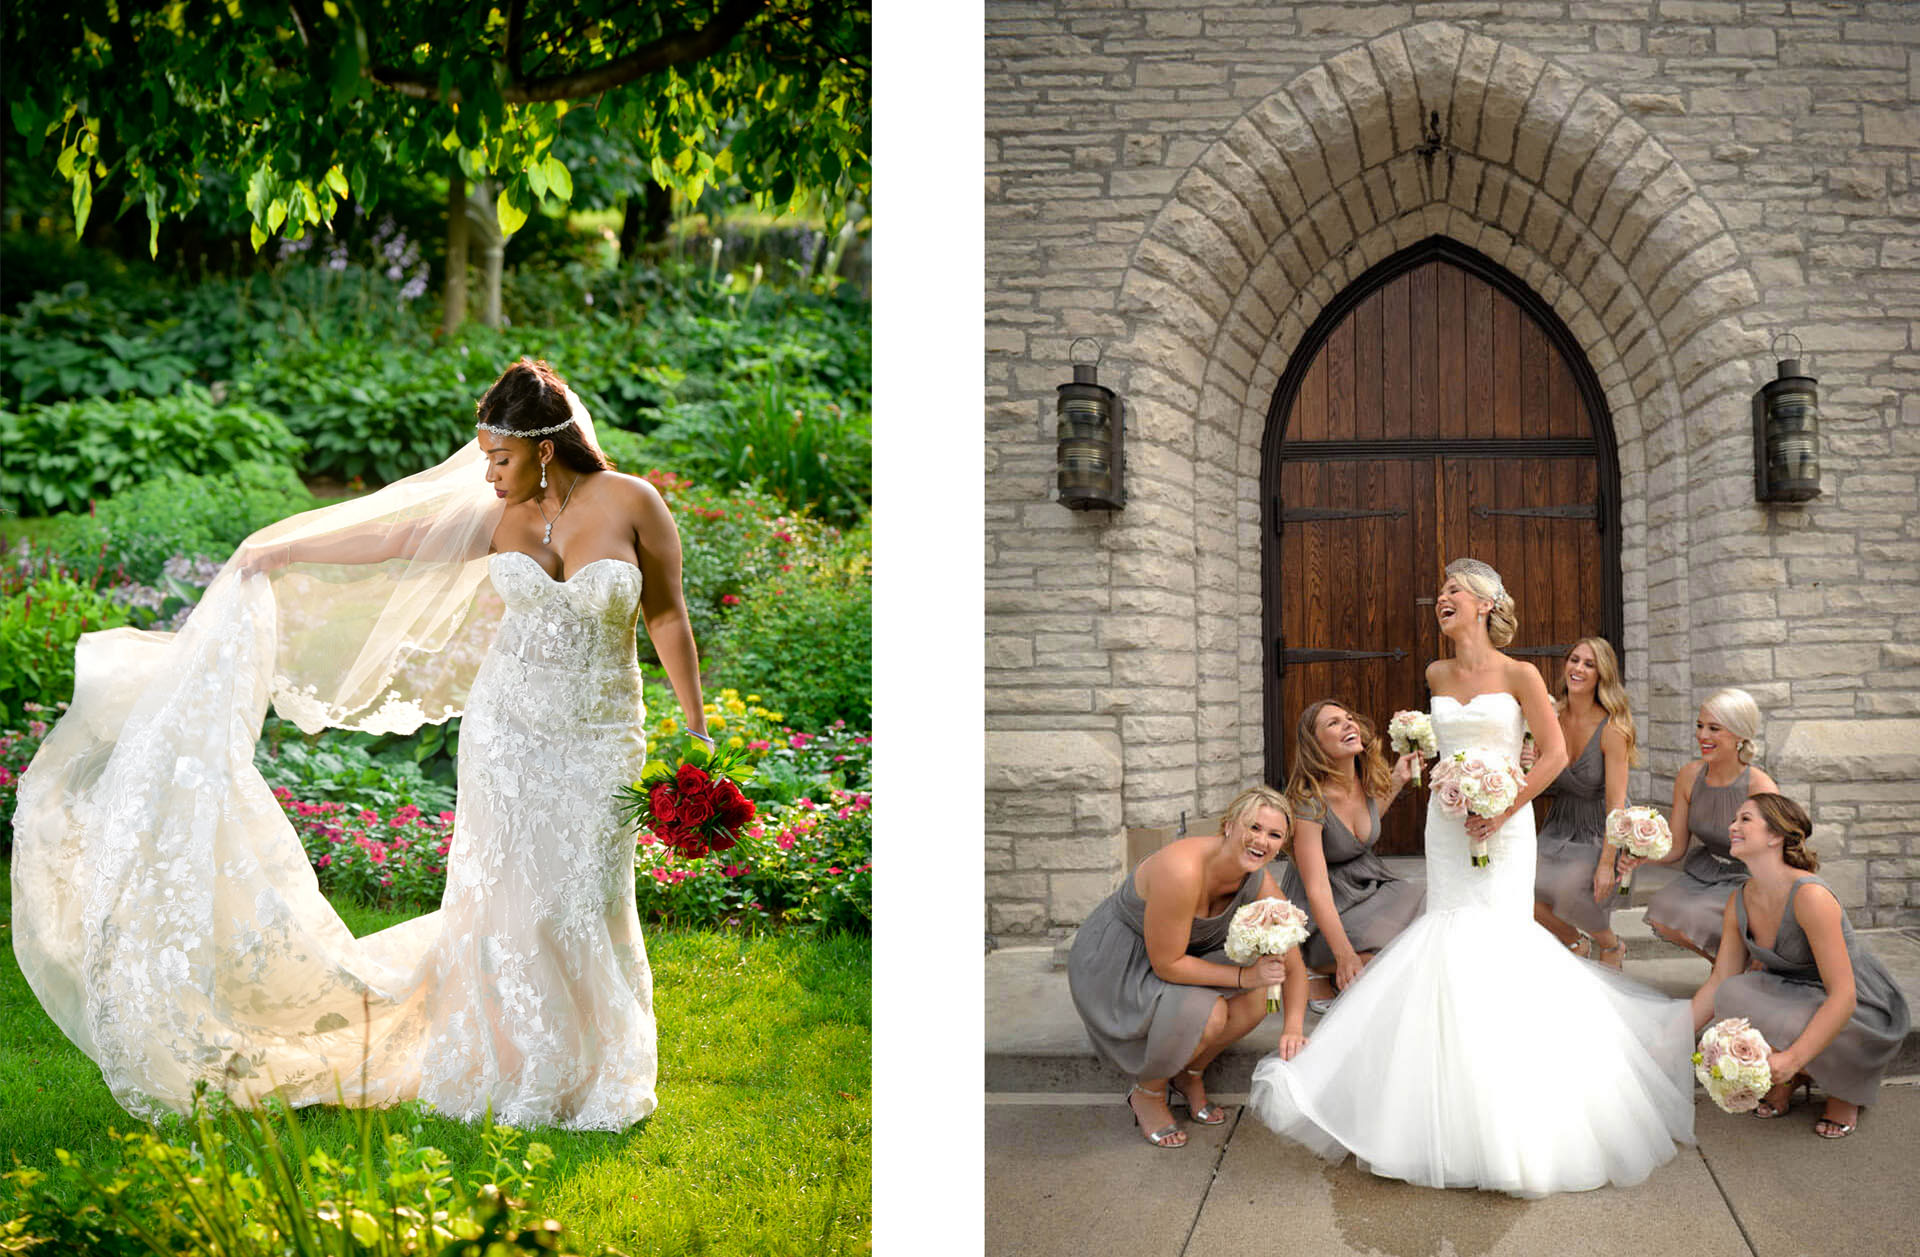 Best and favorite Detroit wedding photographer Marci Curtis captures great wedding moments and creates great lighting for her Detroit, Michigan wedding couples.